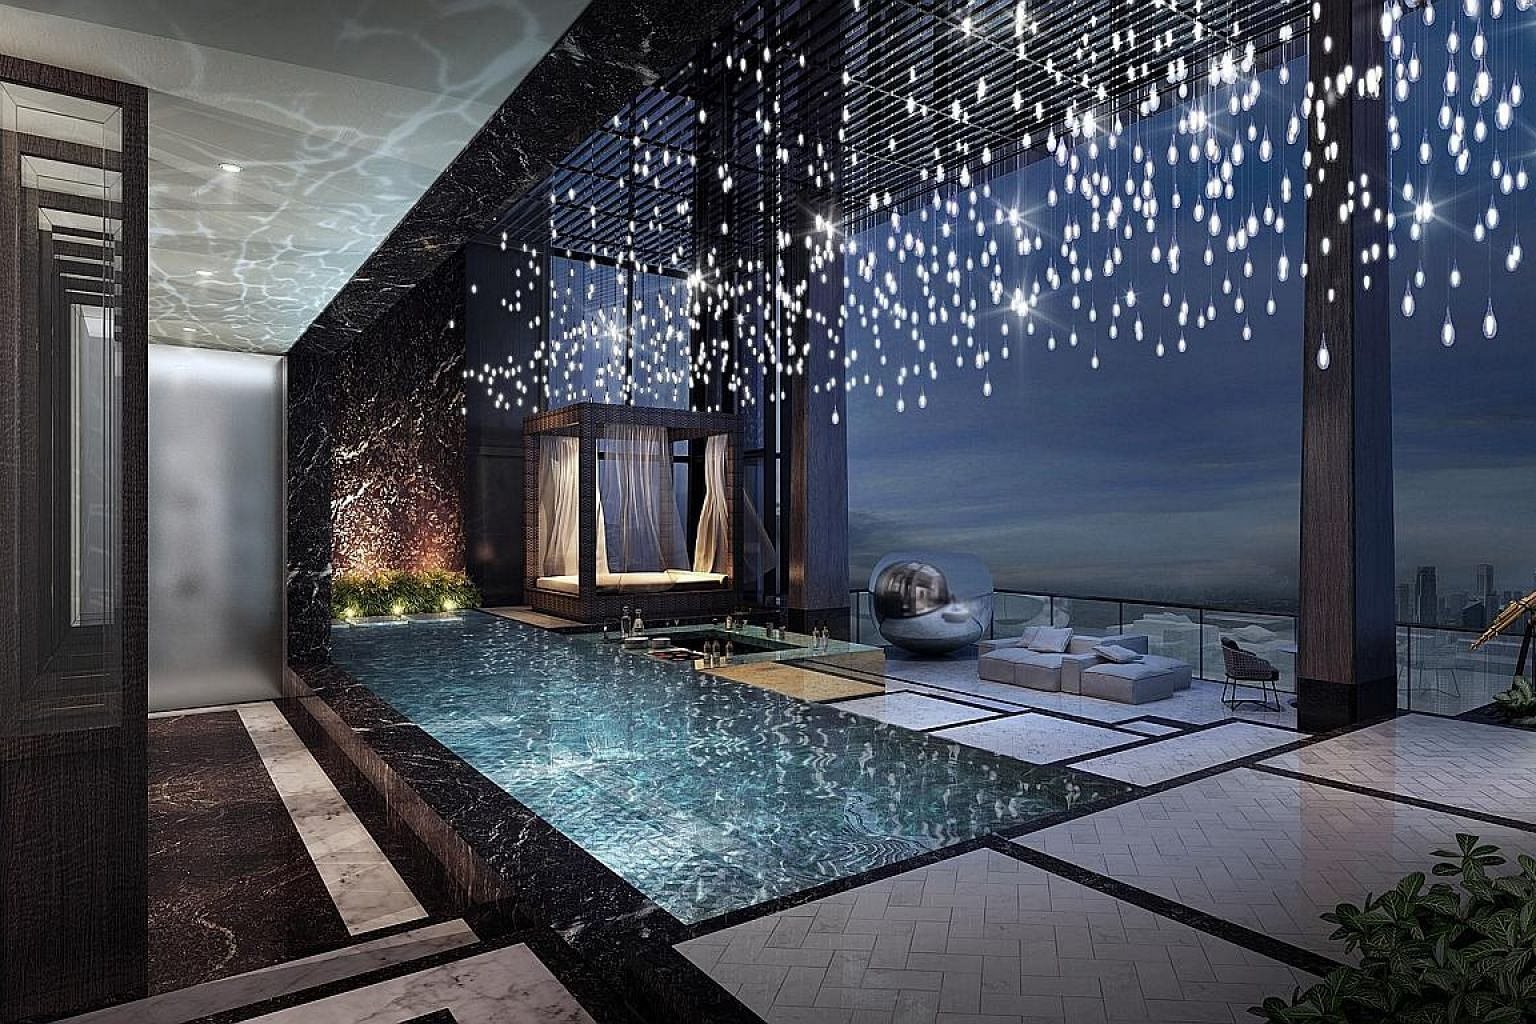 """The 21,108 sq ft """"super penthouse"""" in Wallich Residence has a pool, a cabana, a jacuzzi and panoramic views of Marina Bay and Sentosa."""